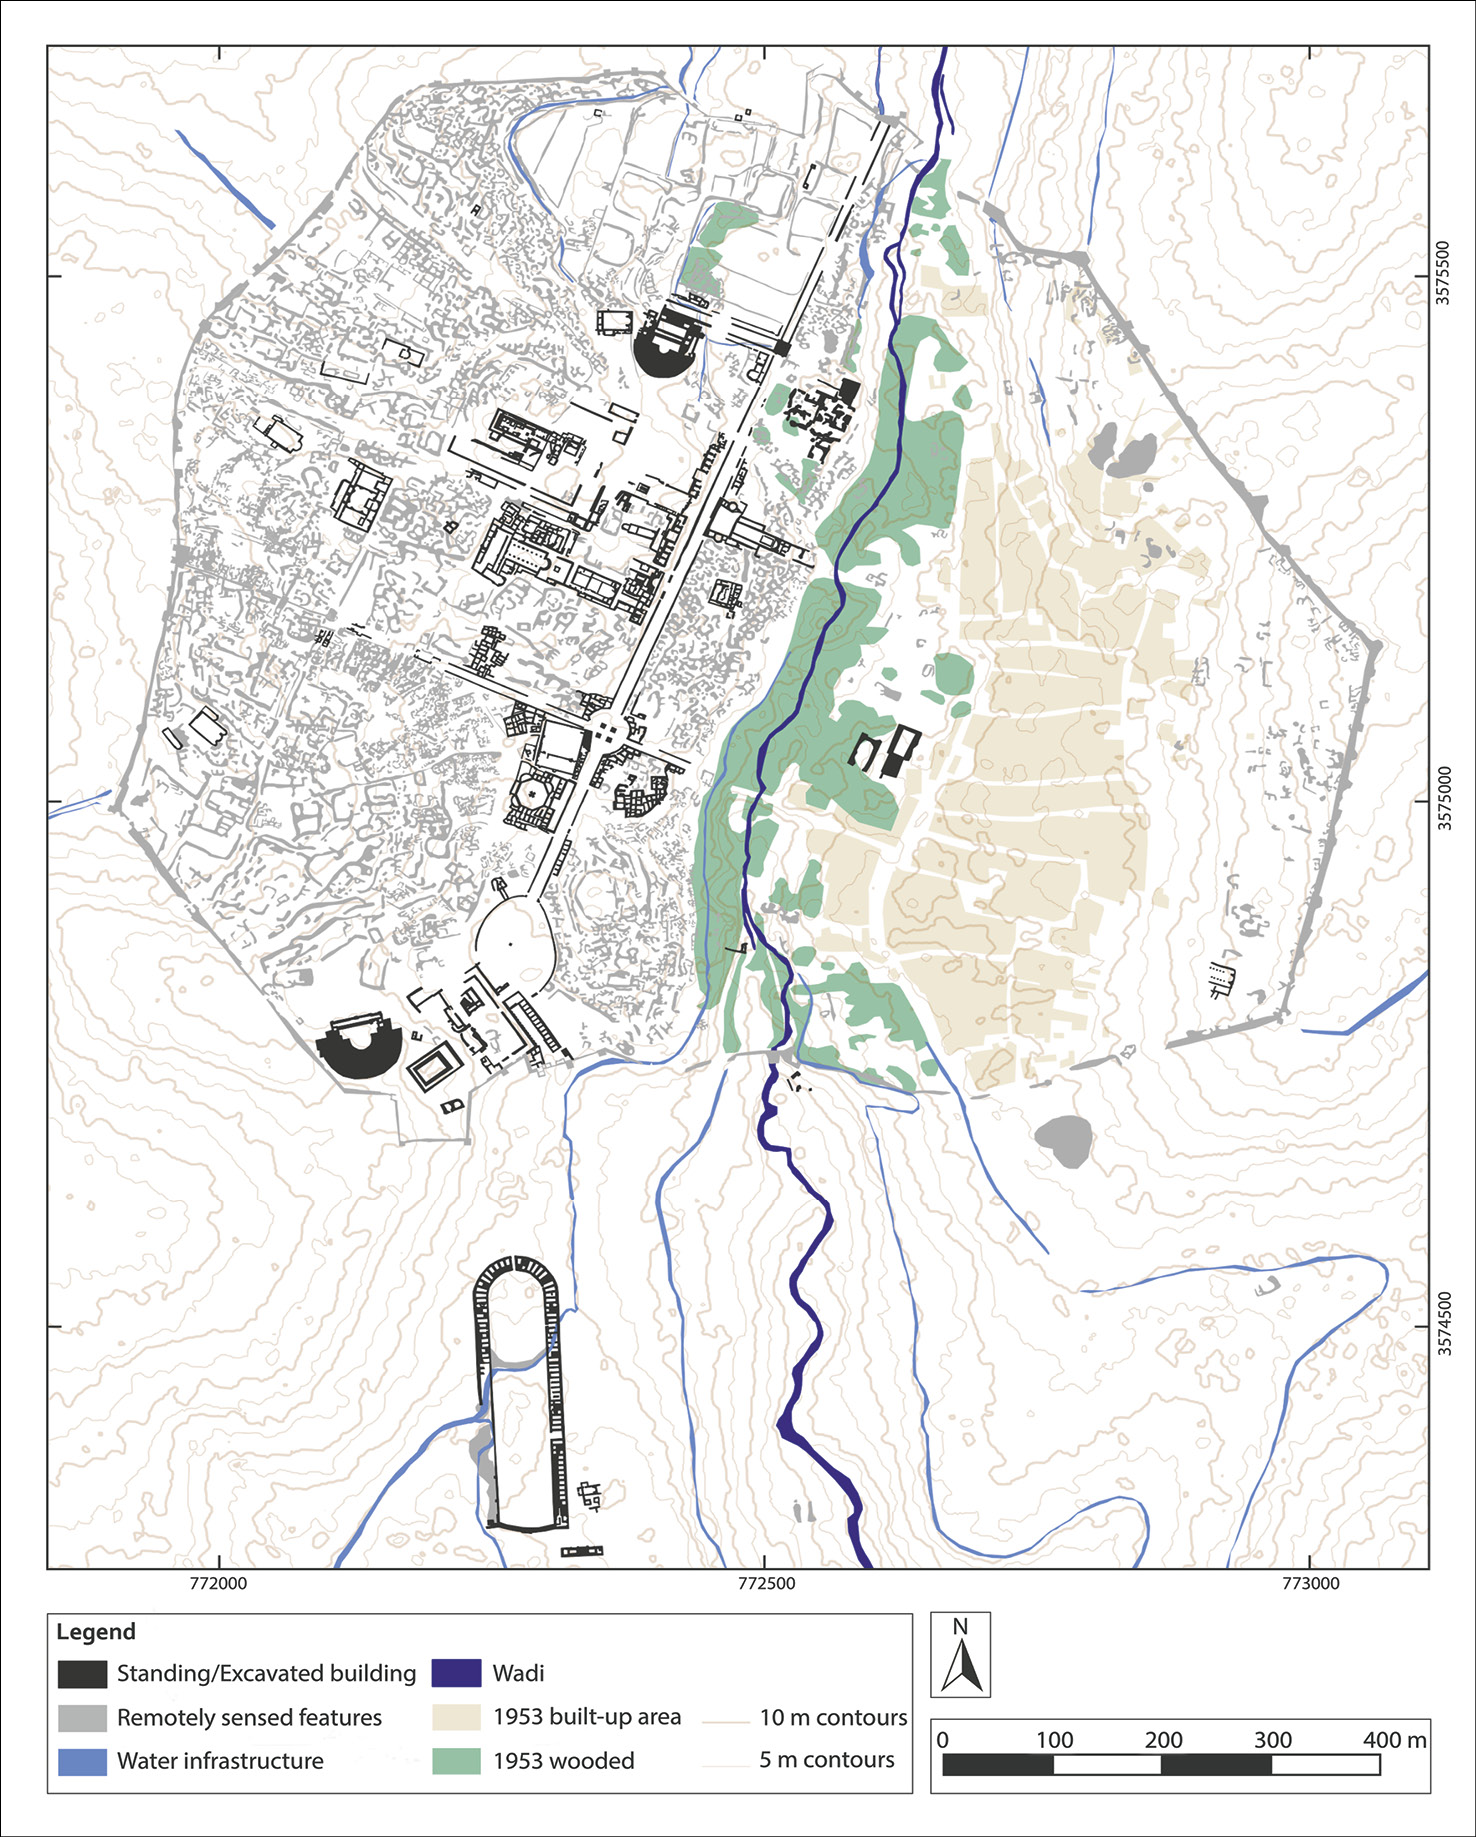 LEFT A map depicting Jerash as currently understood, showing structures known from excavation and remote sensing, as well as the modern built-up area.